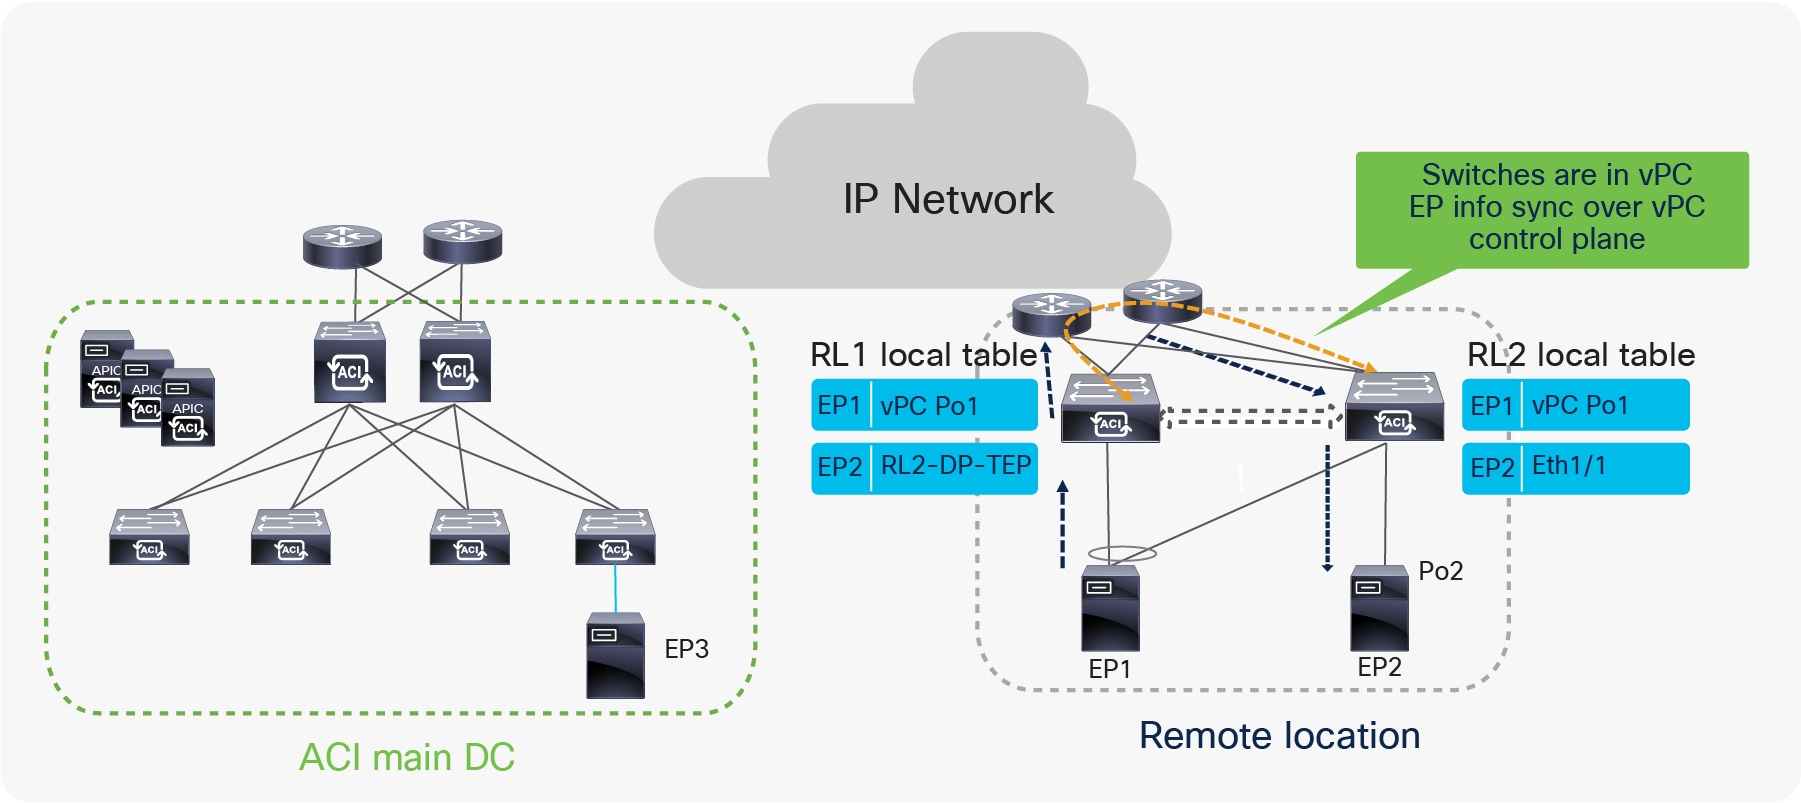 Title: Unicast traffic flow from RL to ACI main DC